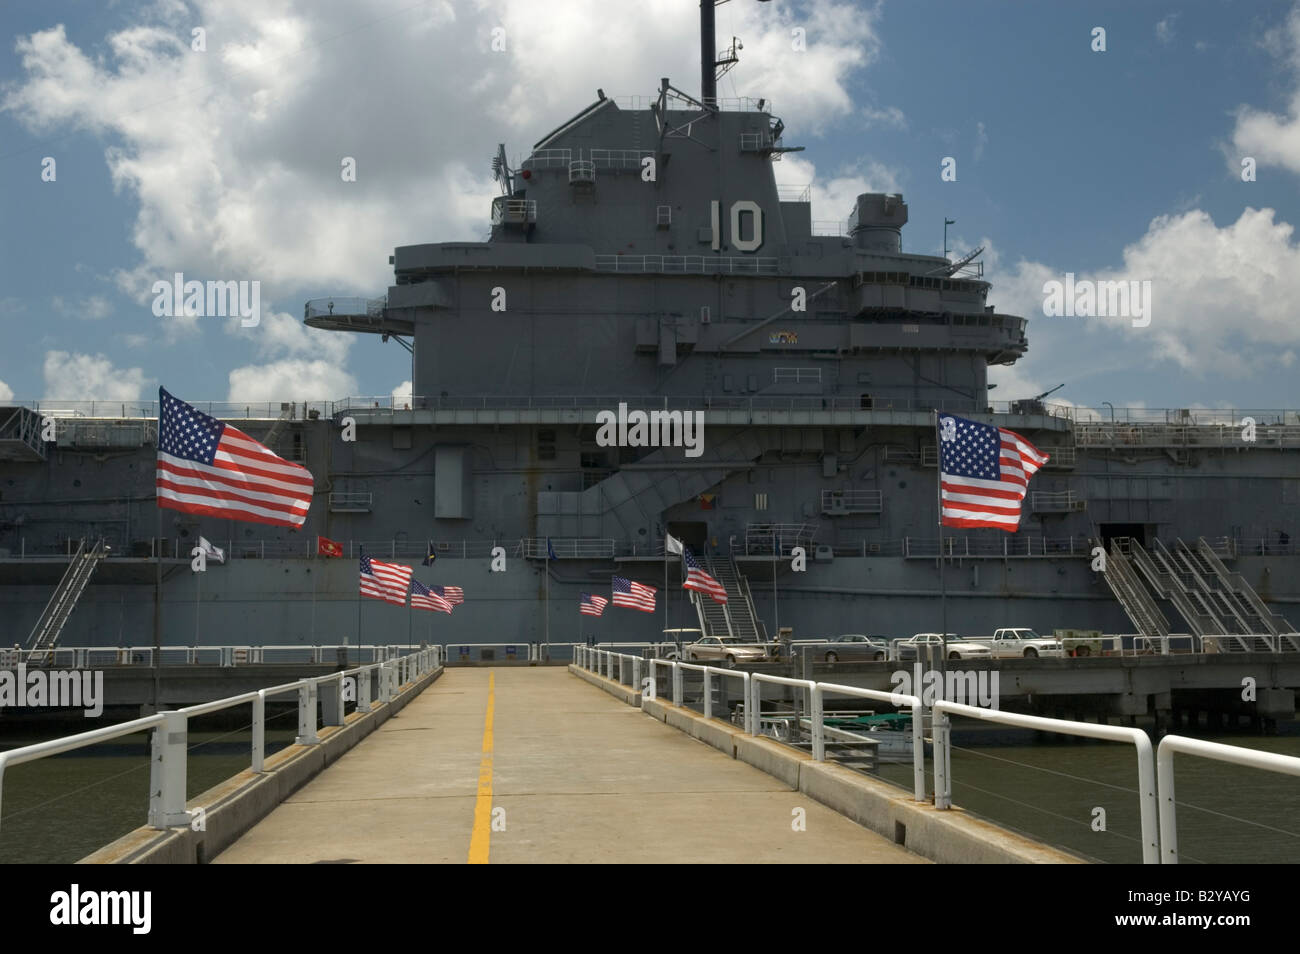 The USS Yorktown CV-10 on display at the Patriots Point Museum in Charleston SC. Stock Photo